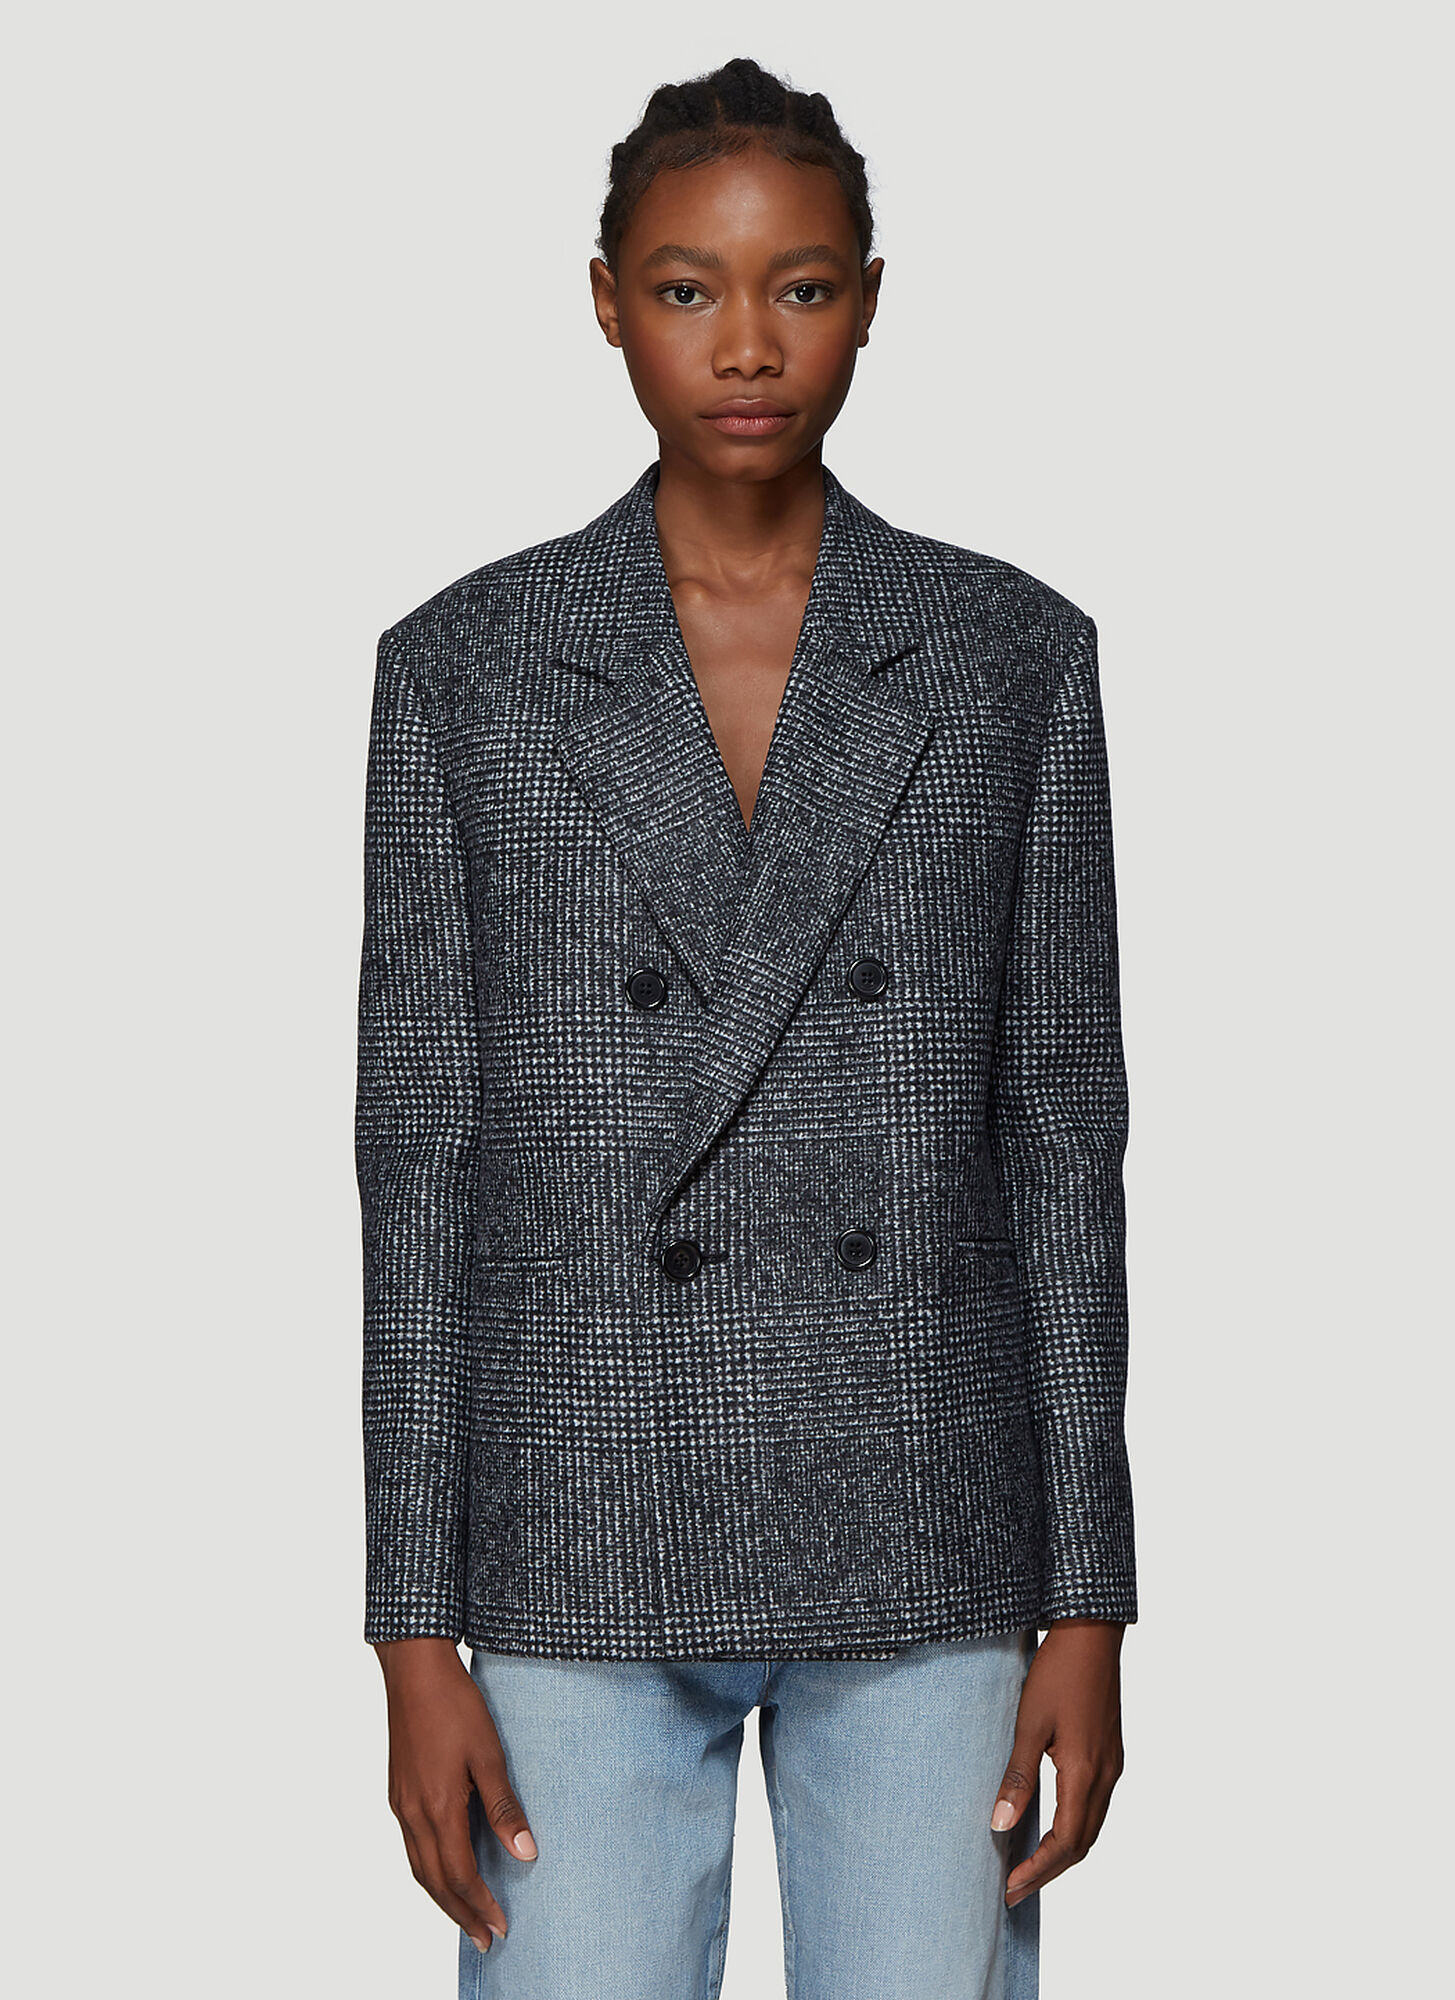 Saint Laurent Double Breasted Blazer Jacket in Grey